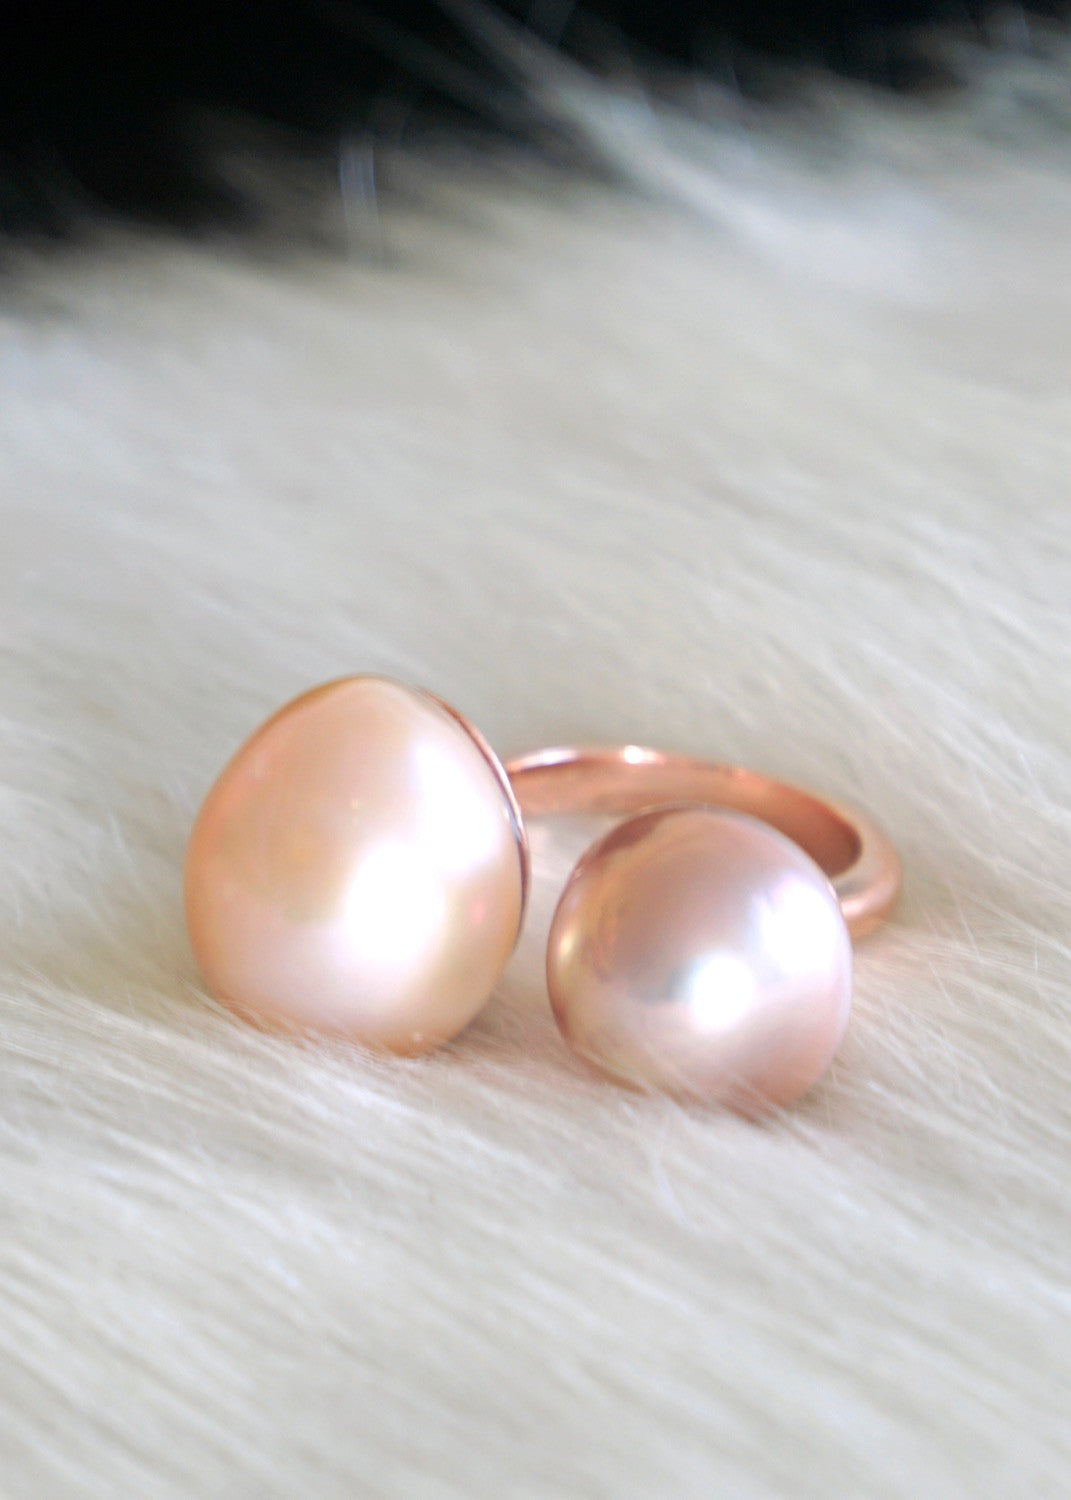 Designs by Alina perfect duo ring ballet slippers- baroque pearls, 14K rose gold